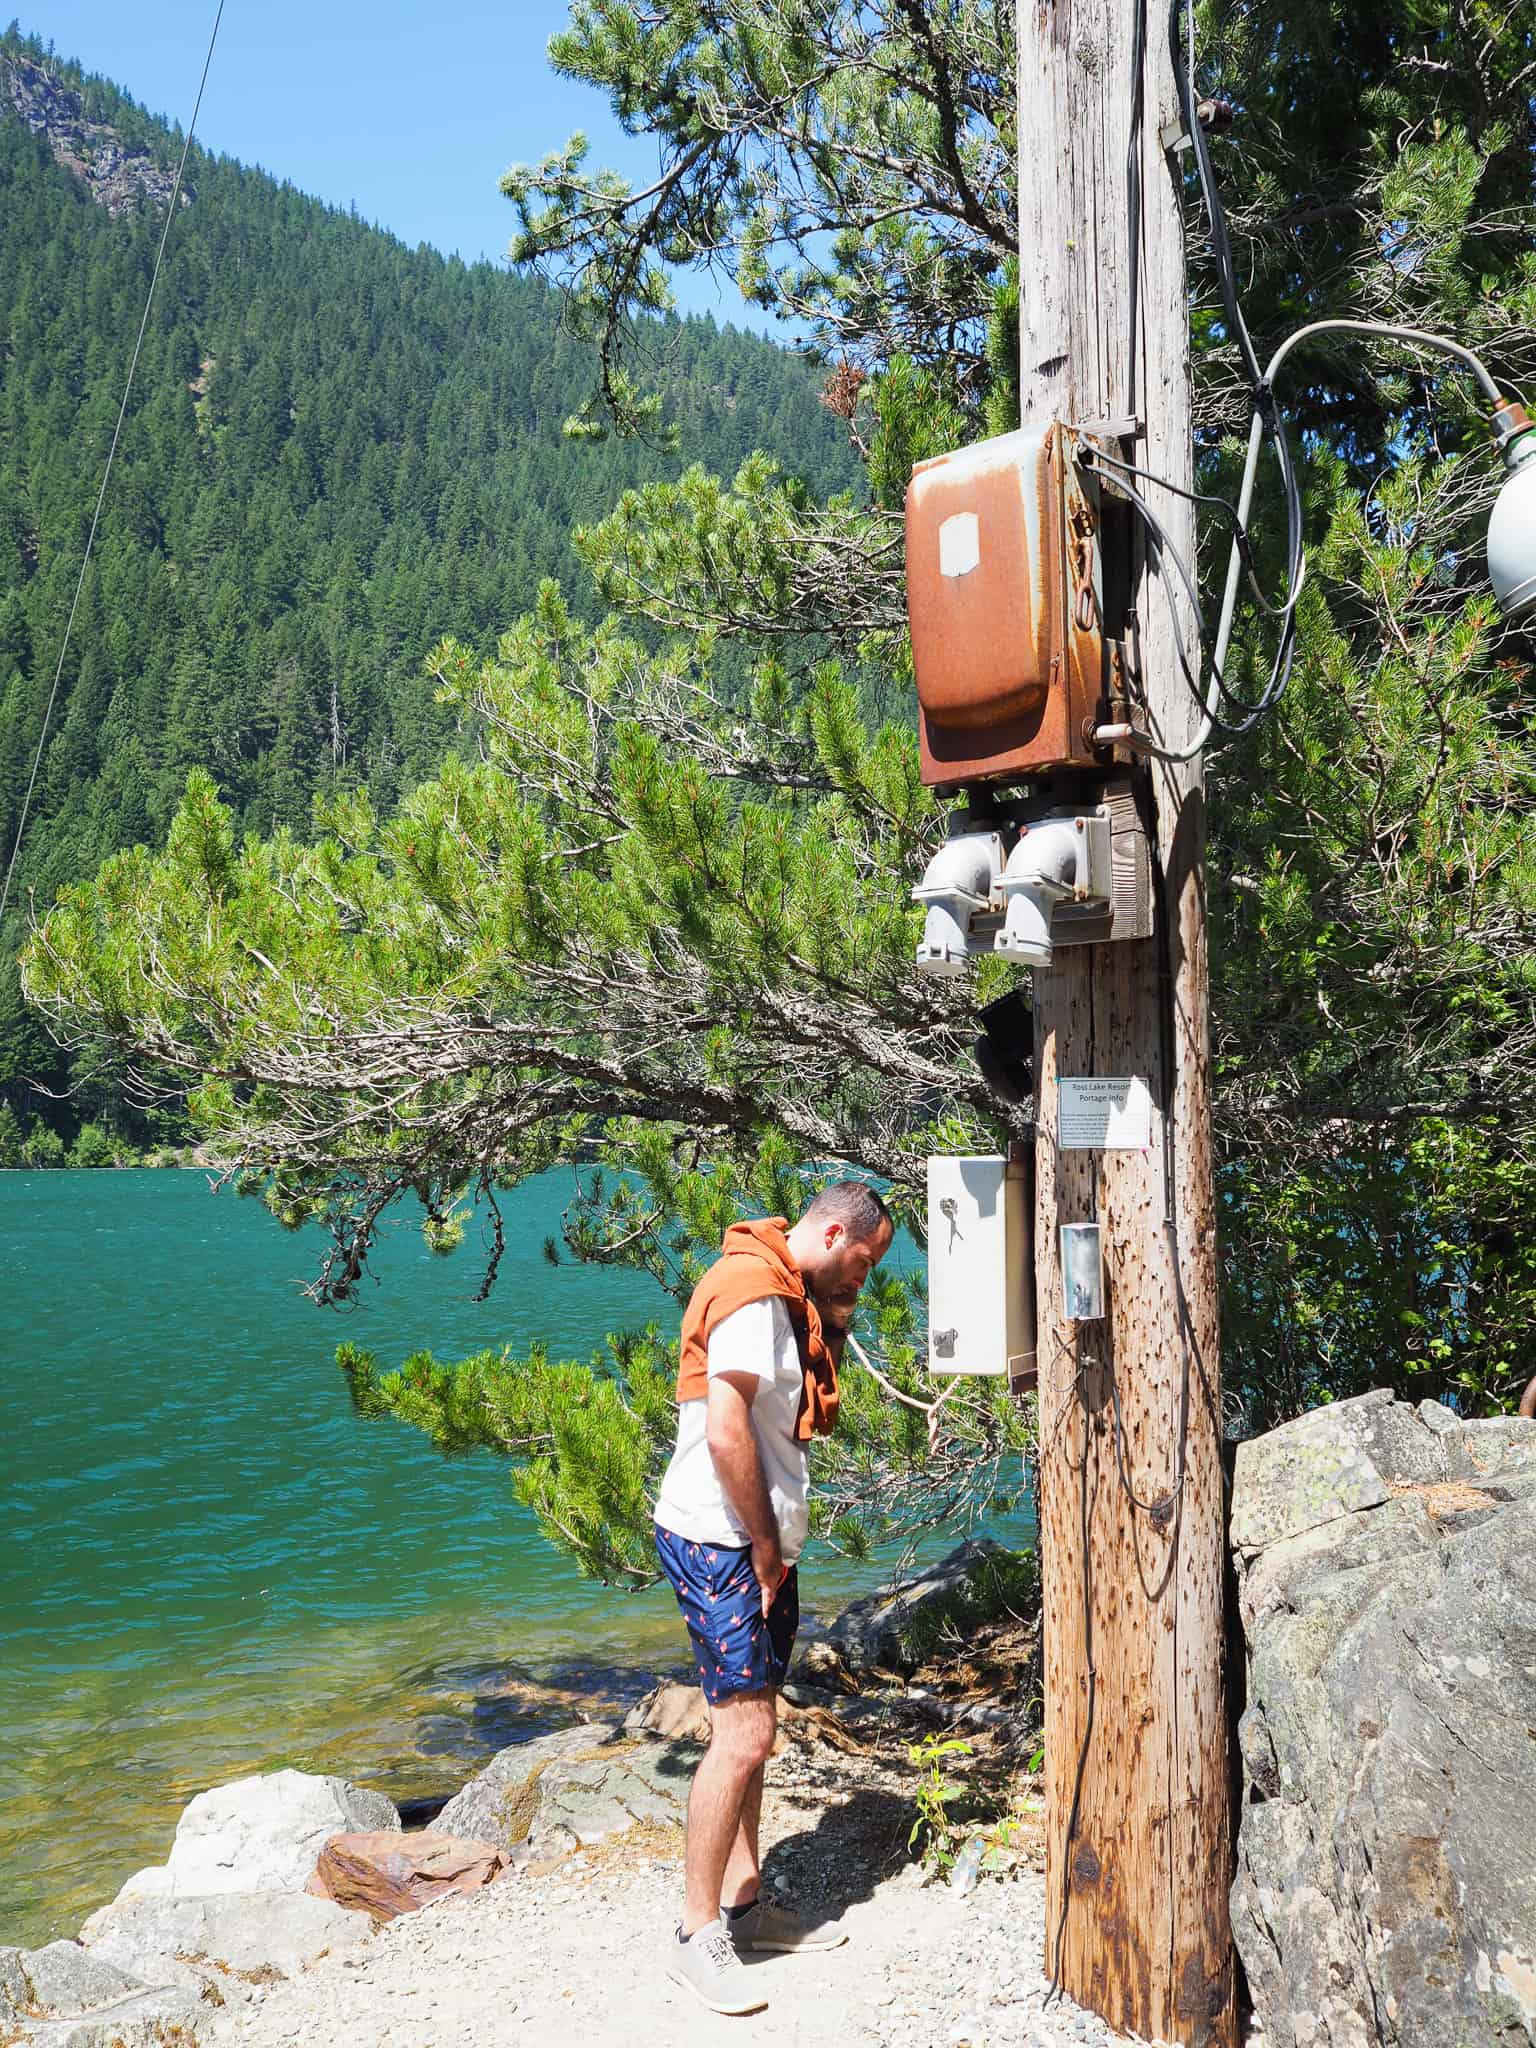 North Cascades National Park is in northern Washington State. A perfect day trip from Seattle, WA. This guide will detail a boat rental on Ross Lake! I felt like a James Bond spy getting to this hidden resort to rent the boat. Peep the hidden phone.